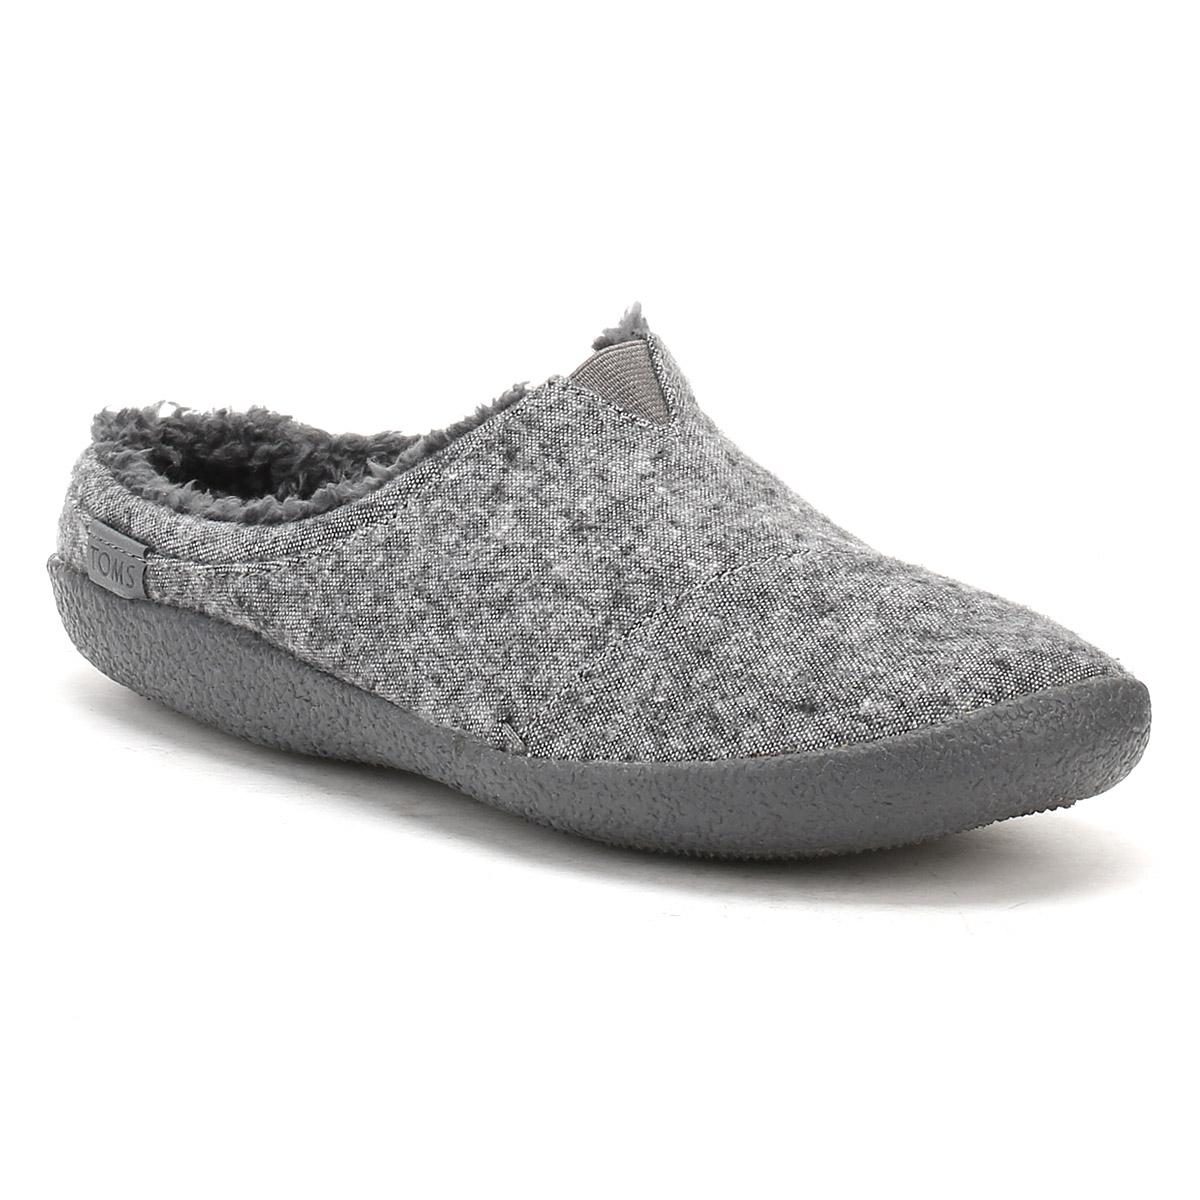 45582a8d8cc2 Toms Mens Grey Textile Berkeley Slippers in Gray for Men - Save ...